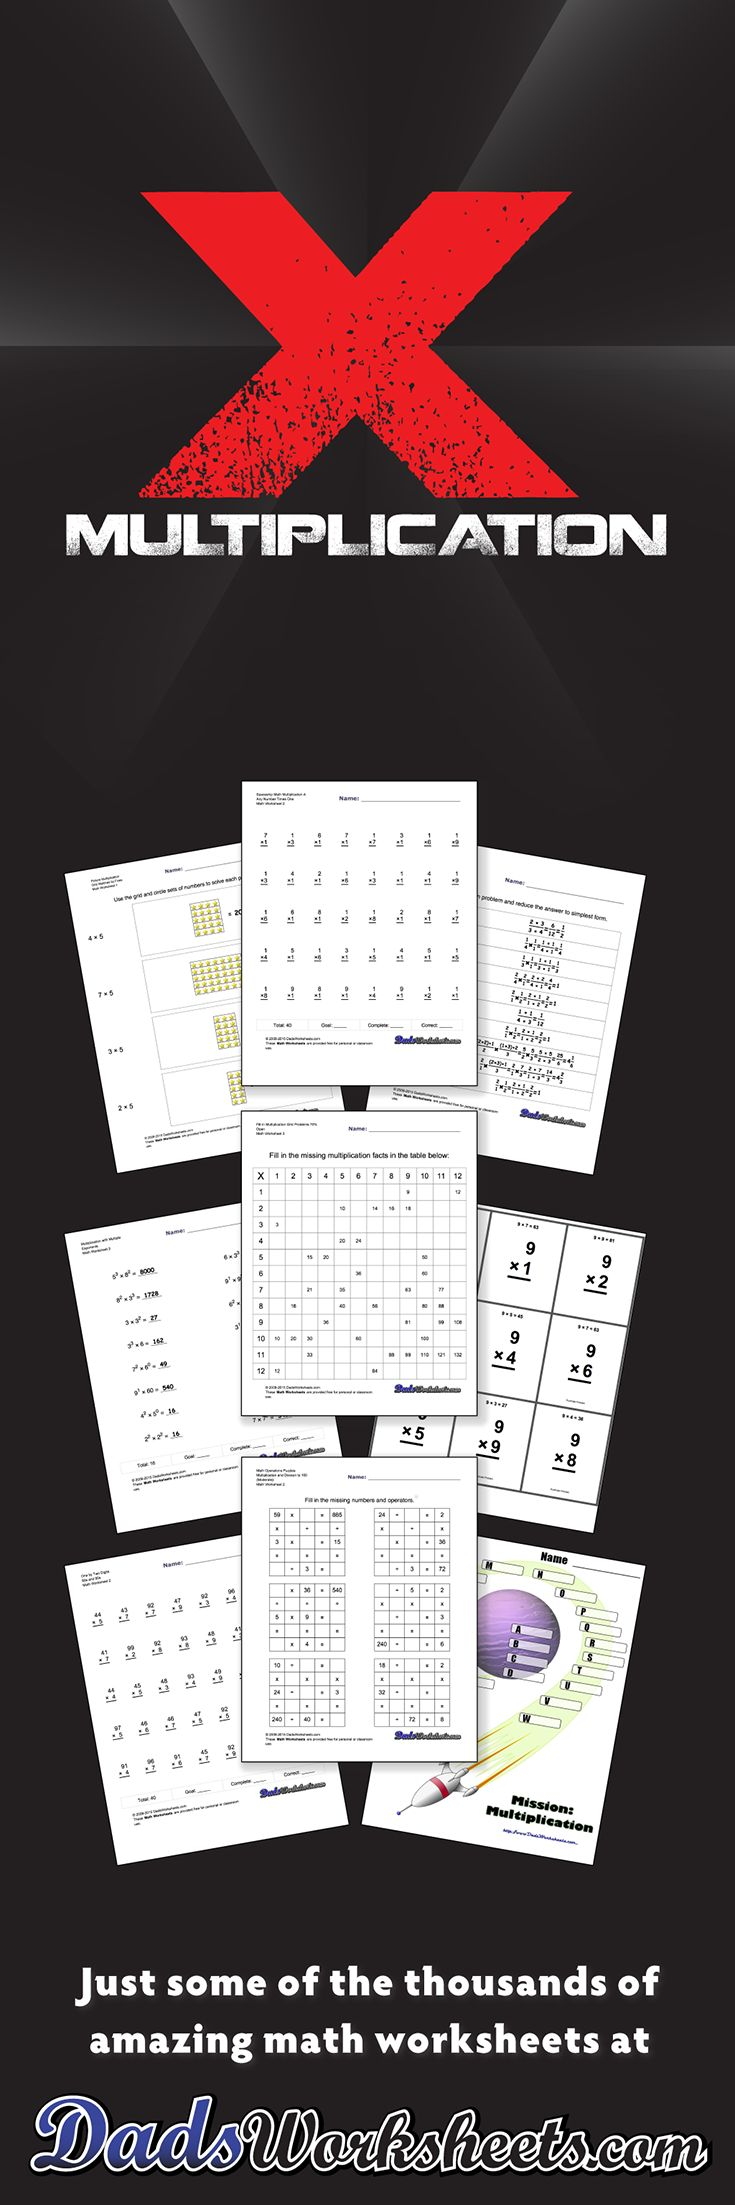 The 25 best printable multiplication worksheets ideas on multiplication worksheets including math facts flash cards multiplication charts and more instantly printable without signup or registration robcynllc Image collections